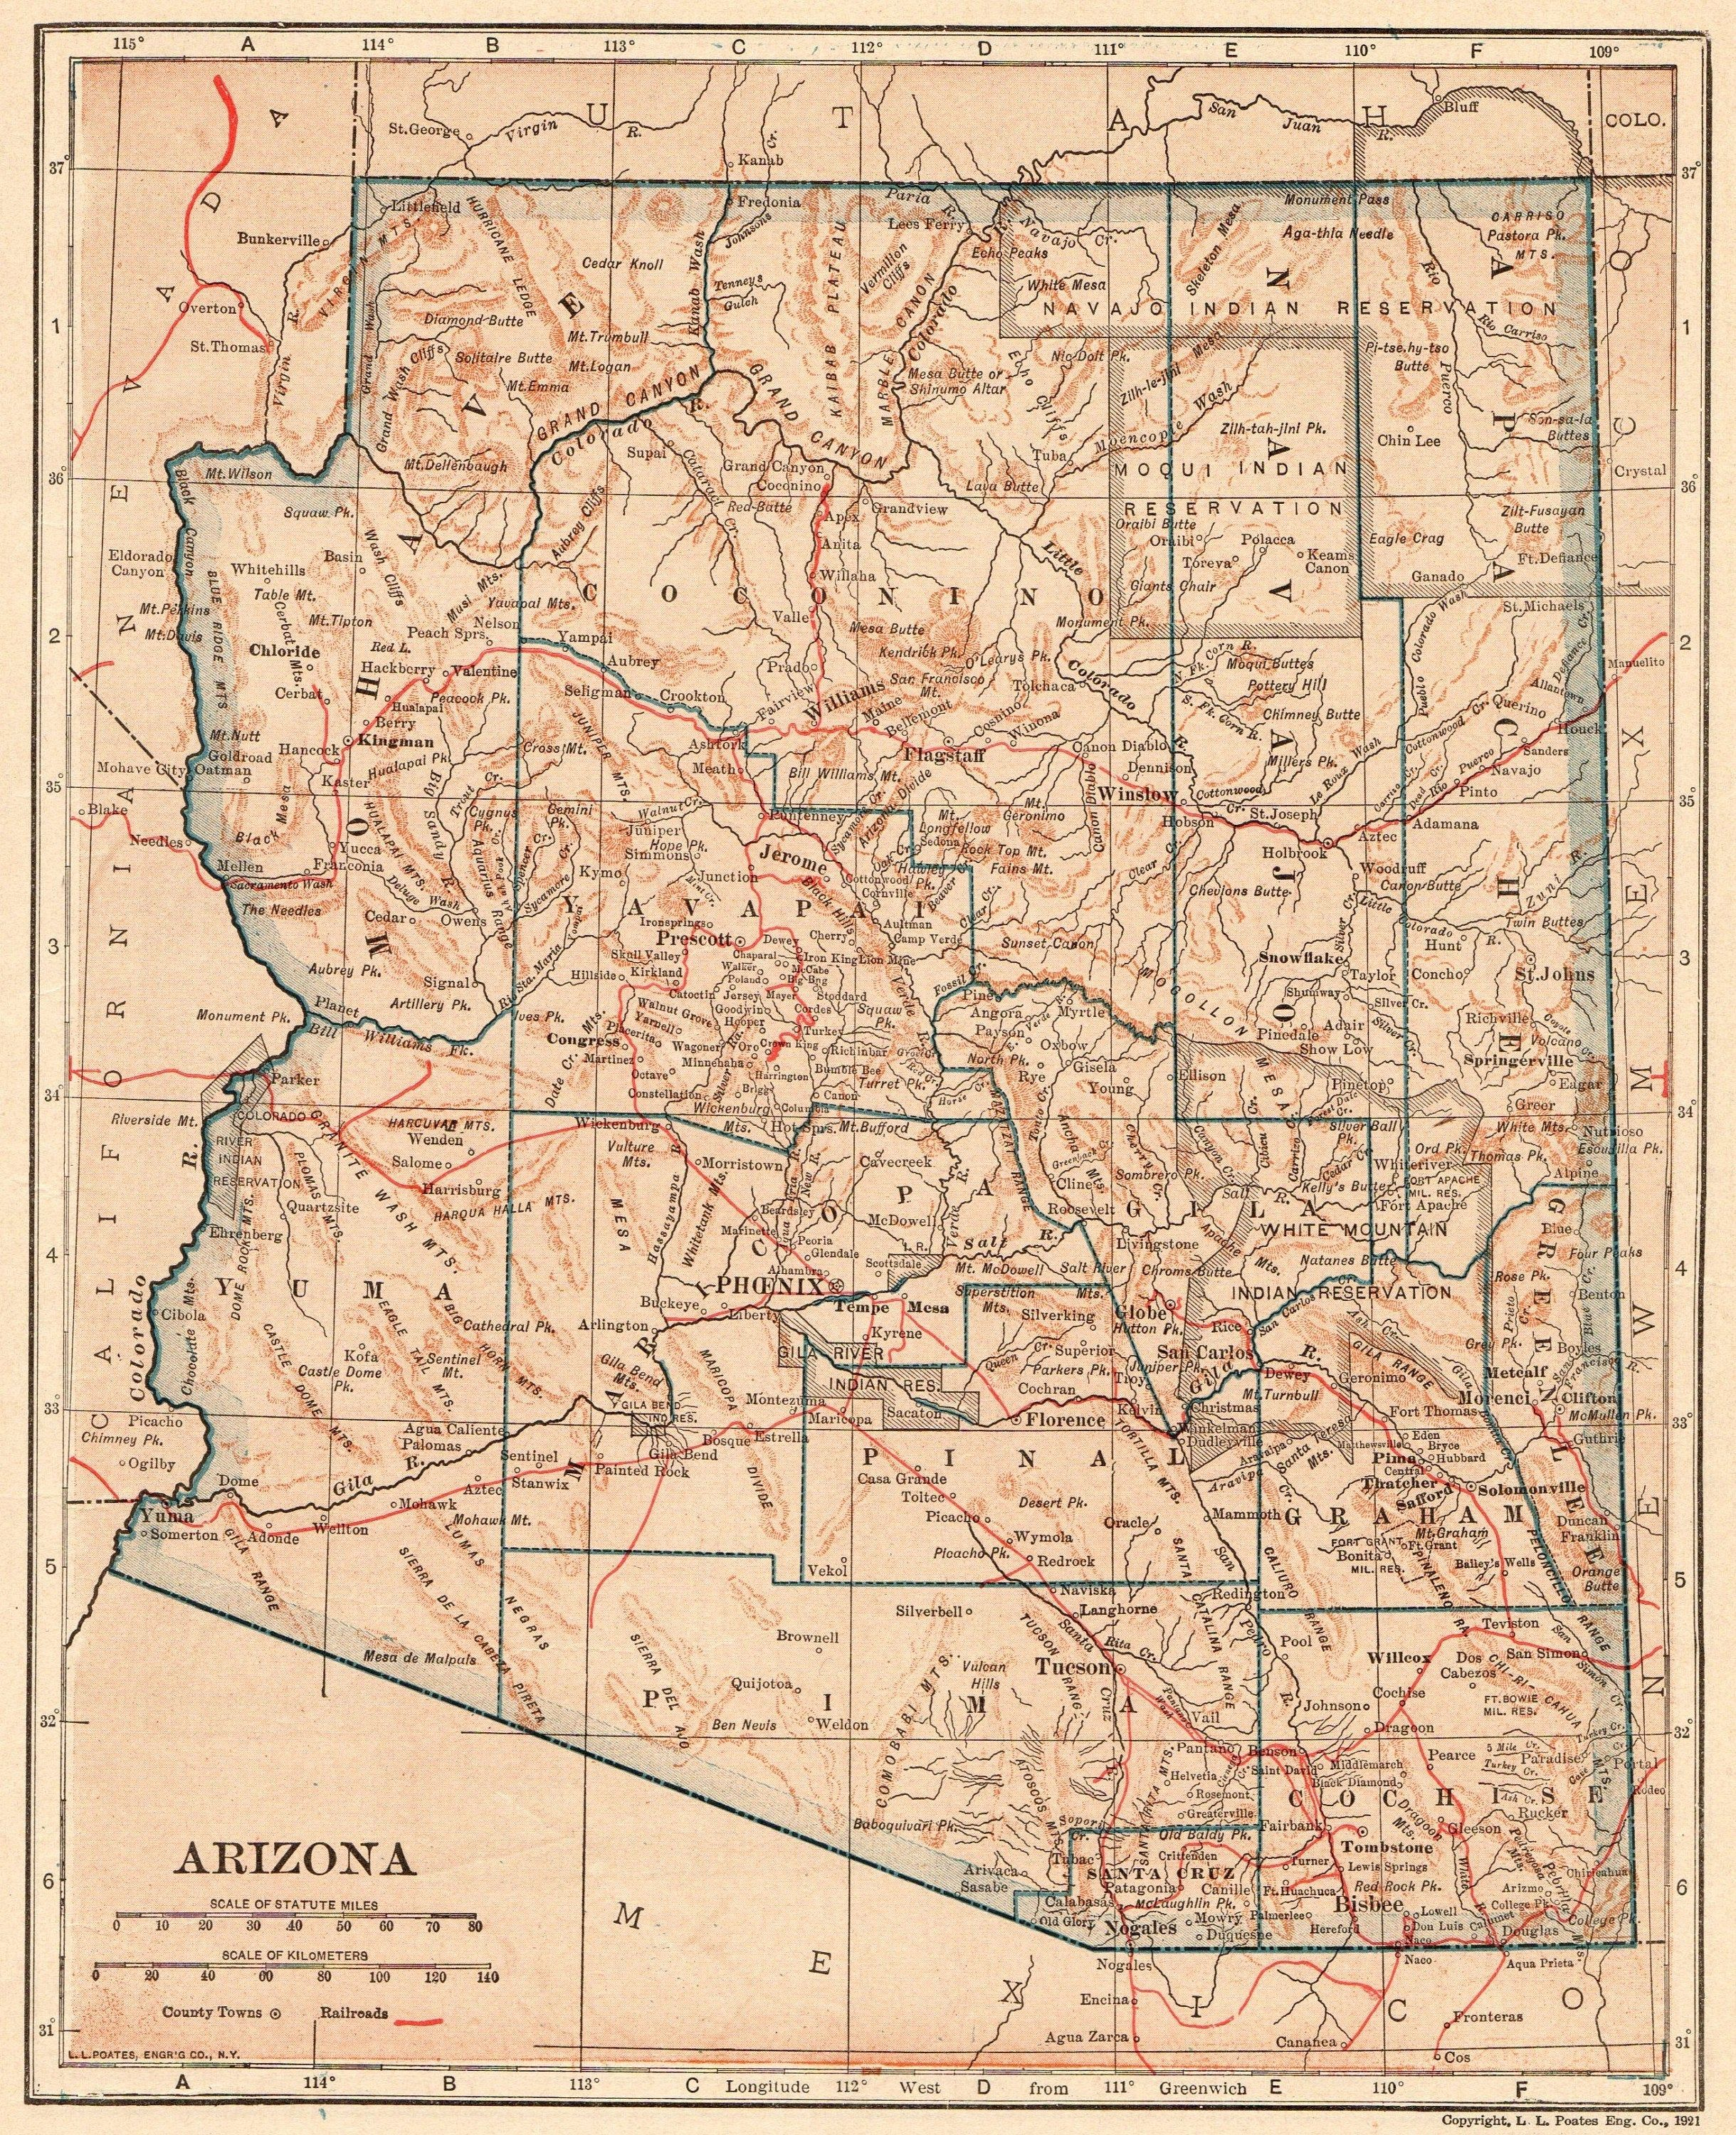 1921 Antique Arizona Map Vintage State Map Of Arizona Gallery Wall Art Library Decor Teacher Gift For Anniversar Arizona Map Art Gallery Wall Arizona State Map